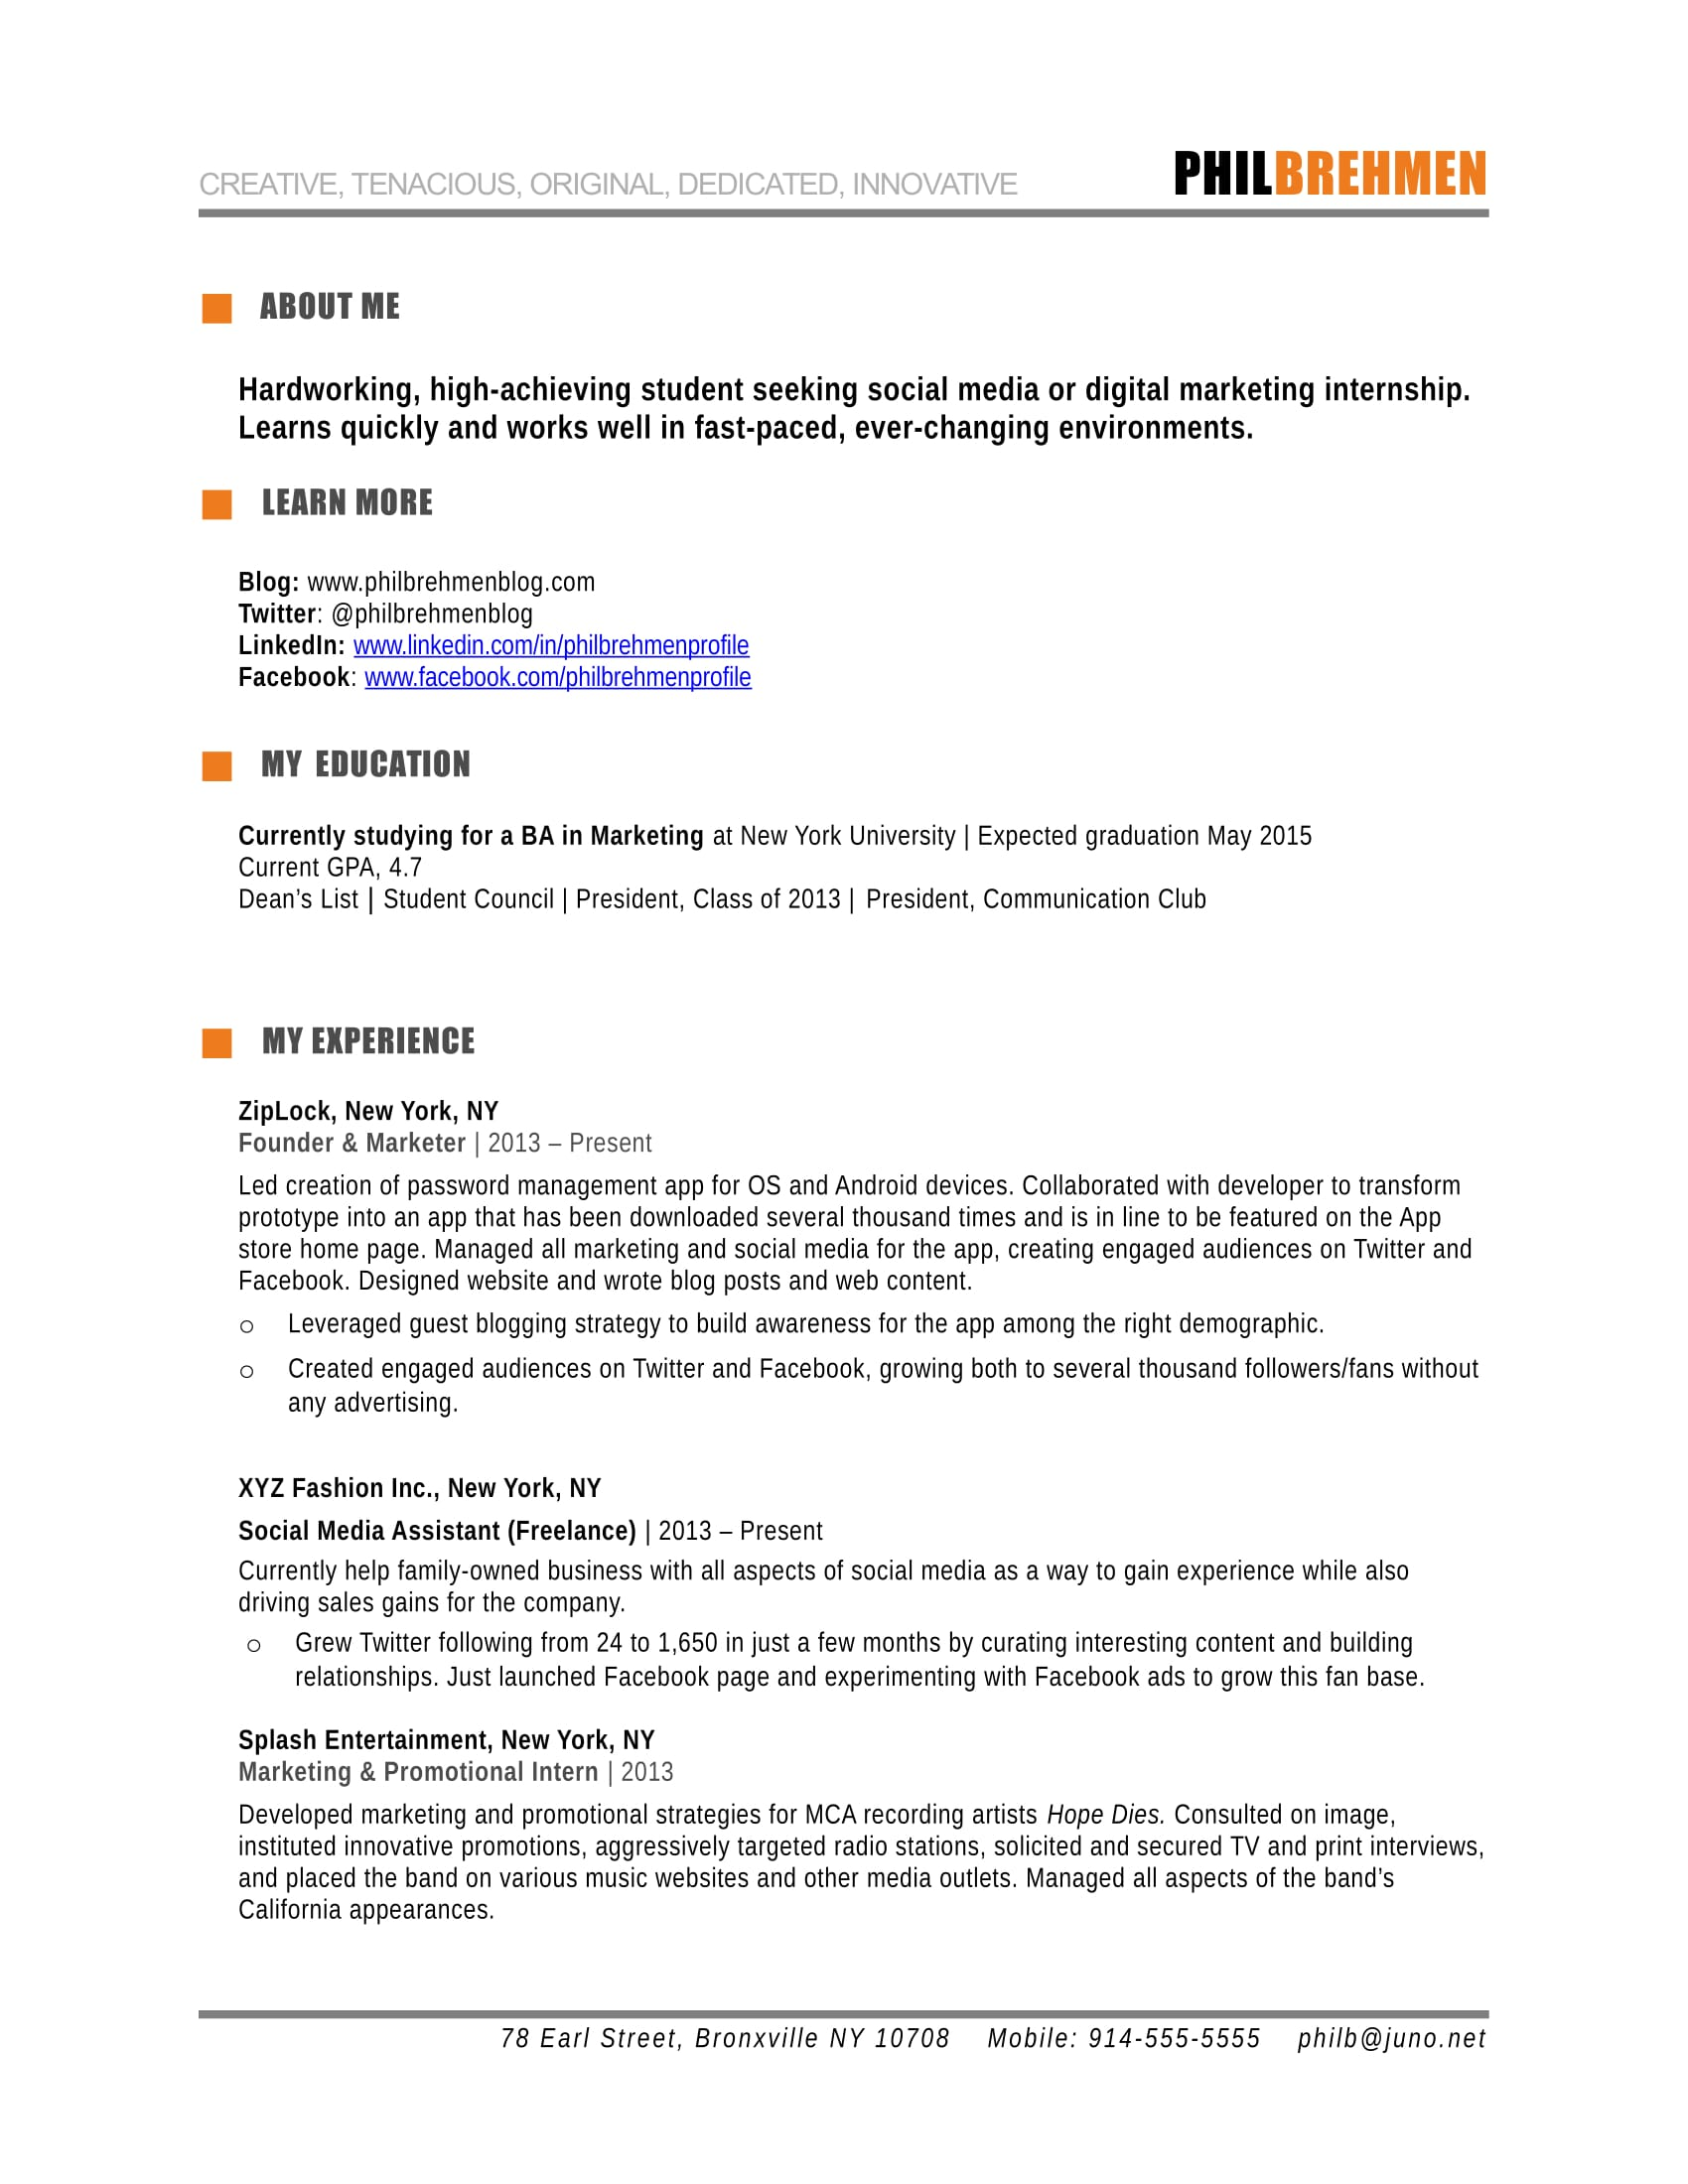 Formatting Rules To Get Your Resume Through The Scanning How To Write A Marketing Resume Hiring Managers Will